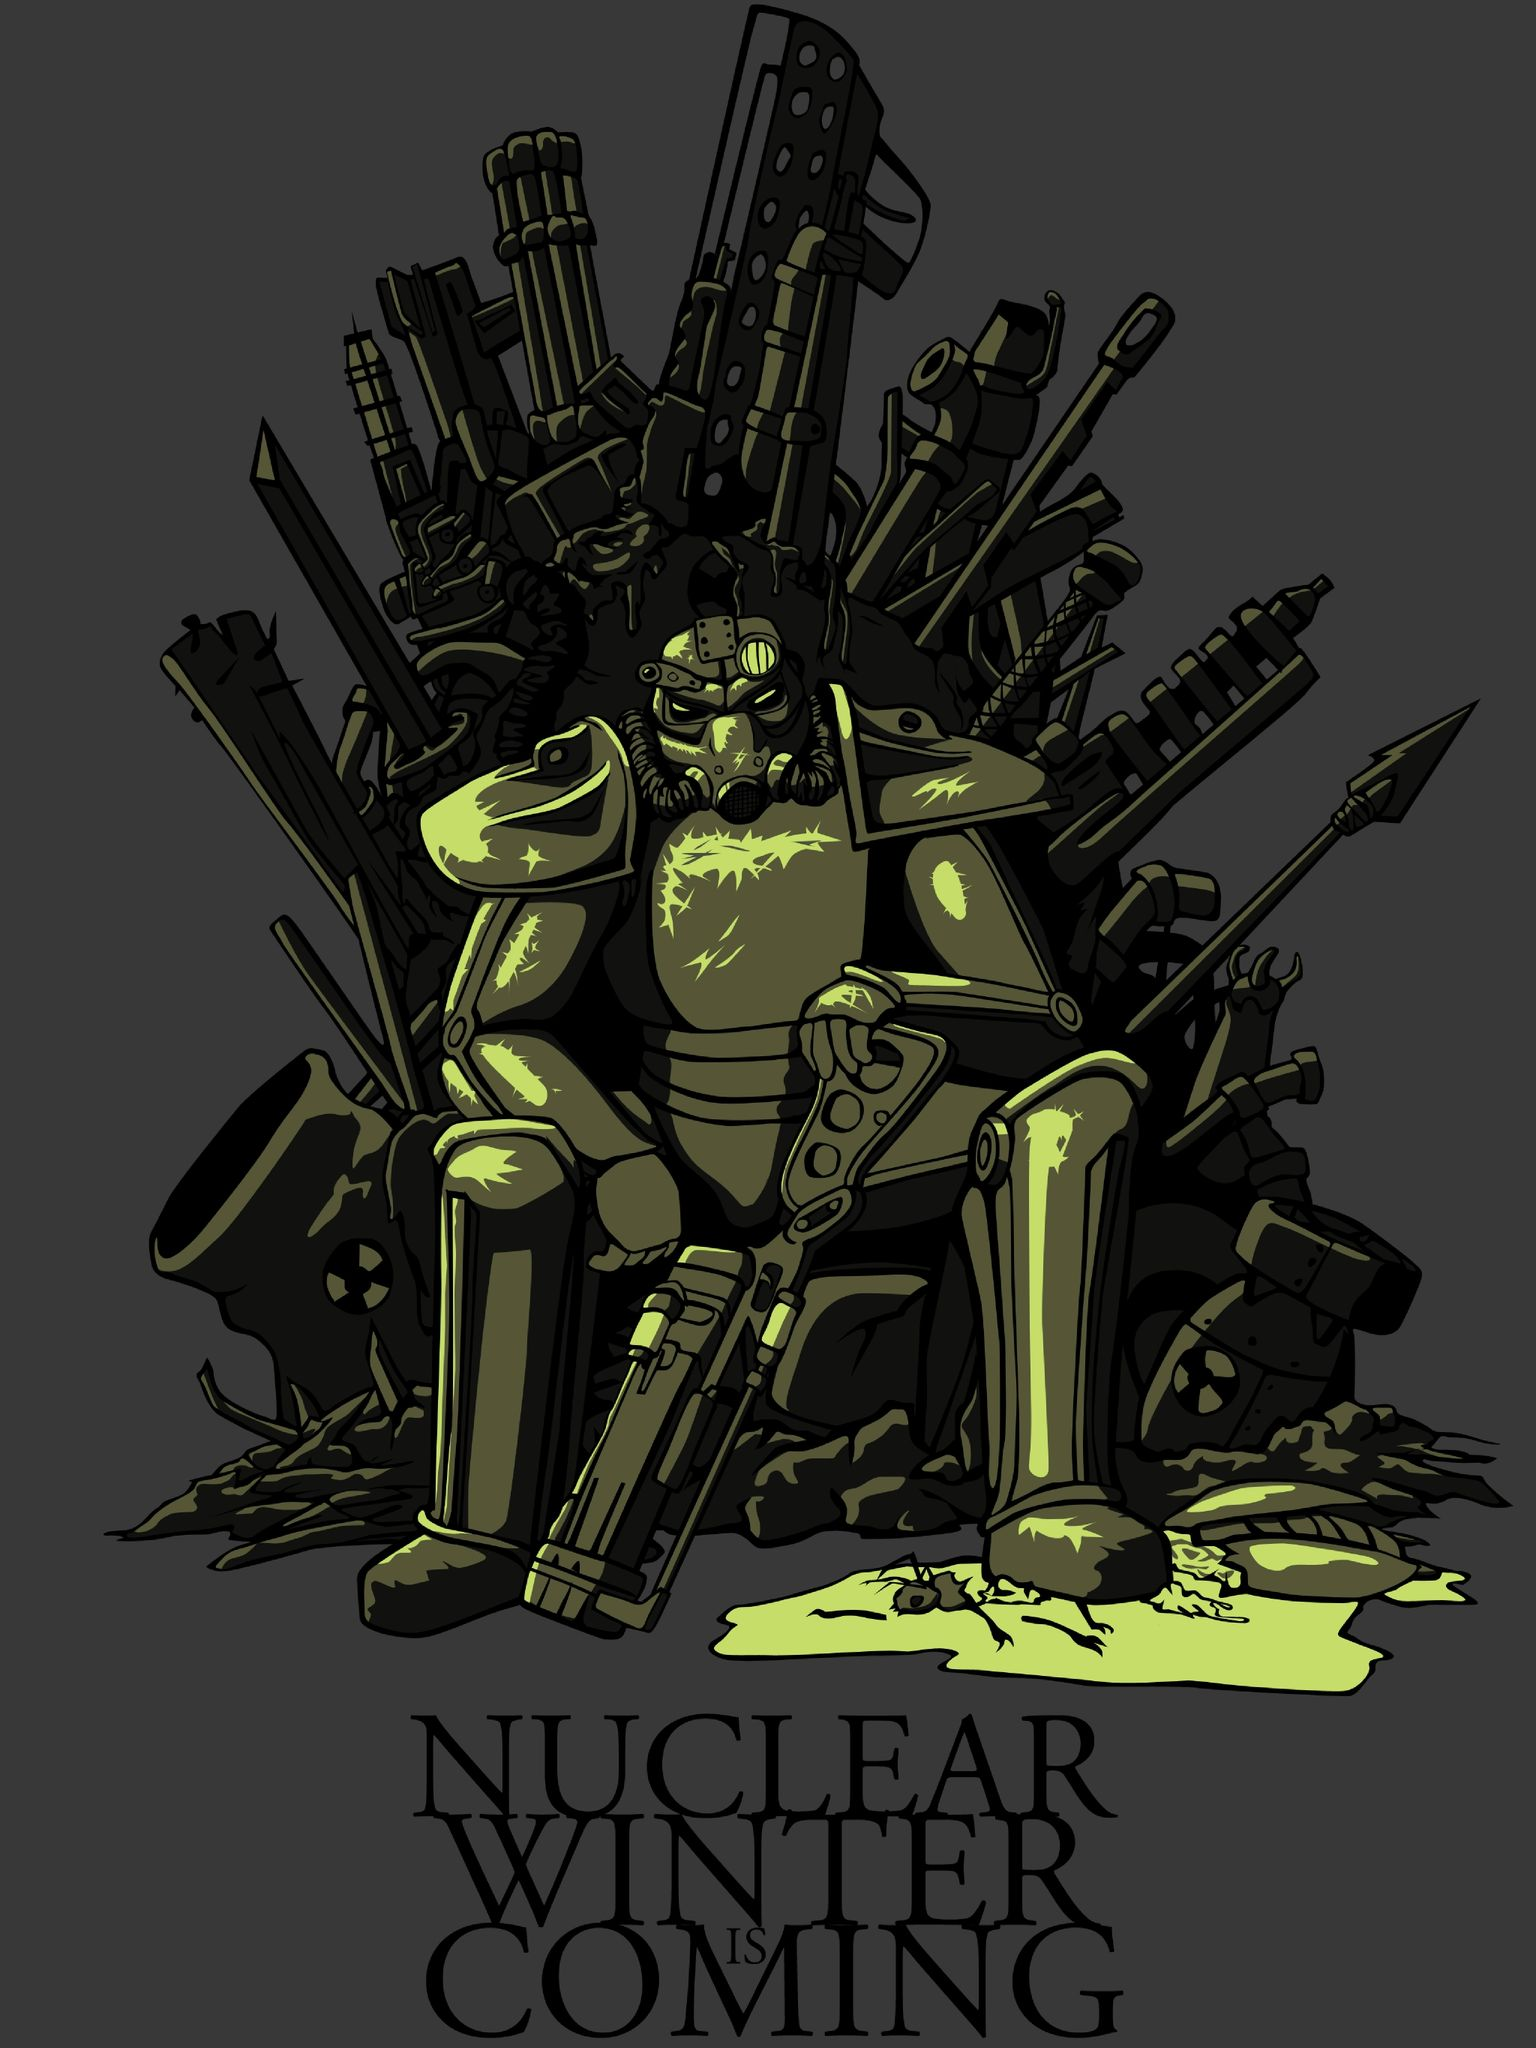 nuclear winter is comming vert